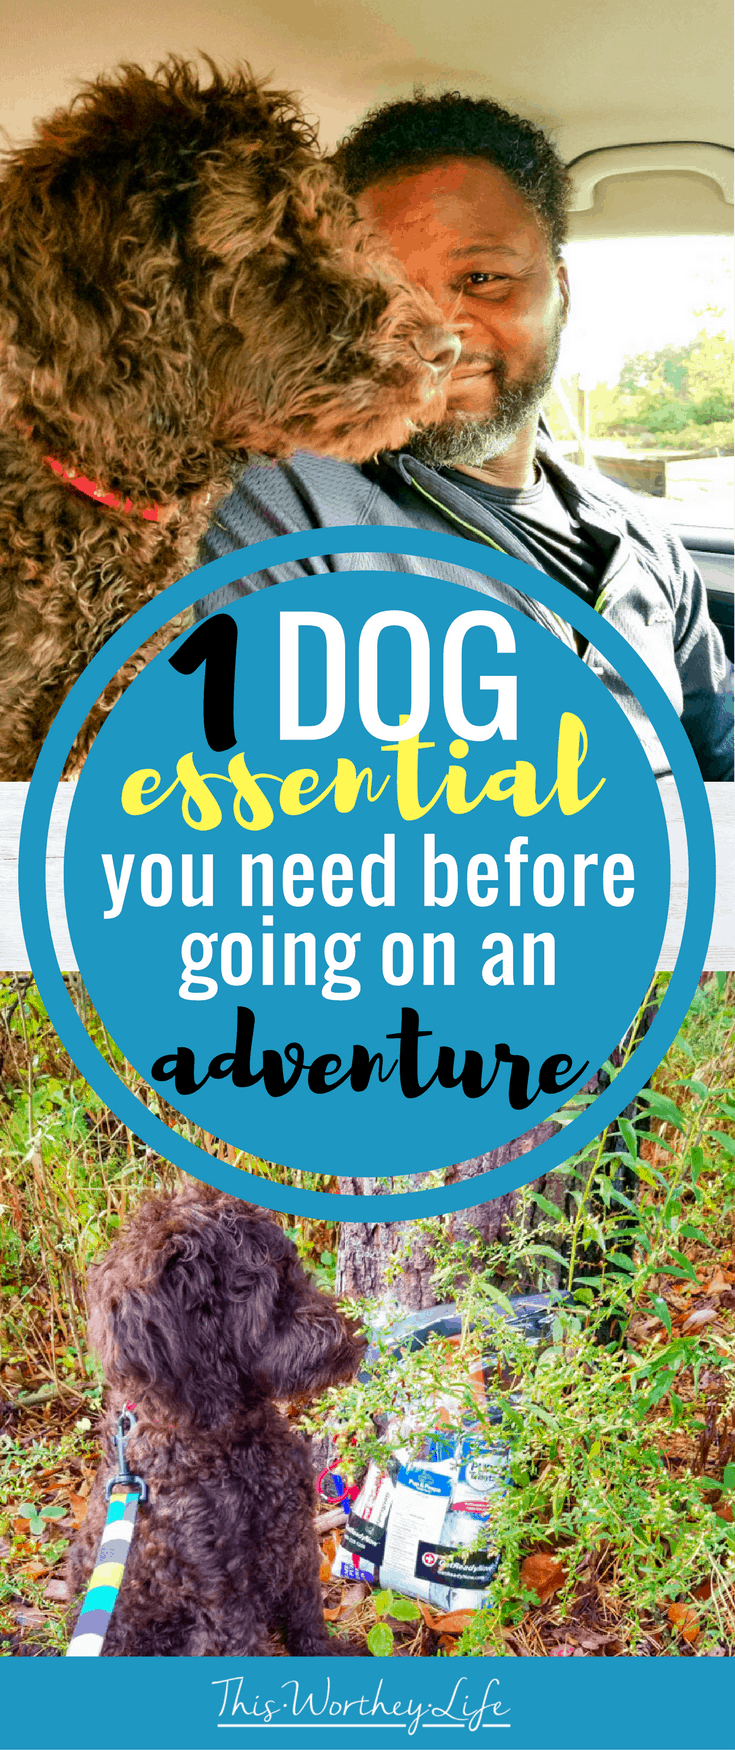 Dogs are great to take on a road trip, out hiking, or on a long walk. However, before you take your dog on an adventure, there is ONE essential you NEED to have! Read about that 1 Dog Essential You Need Before Taking A Road Trip | Hiking | Walking on the blog!